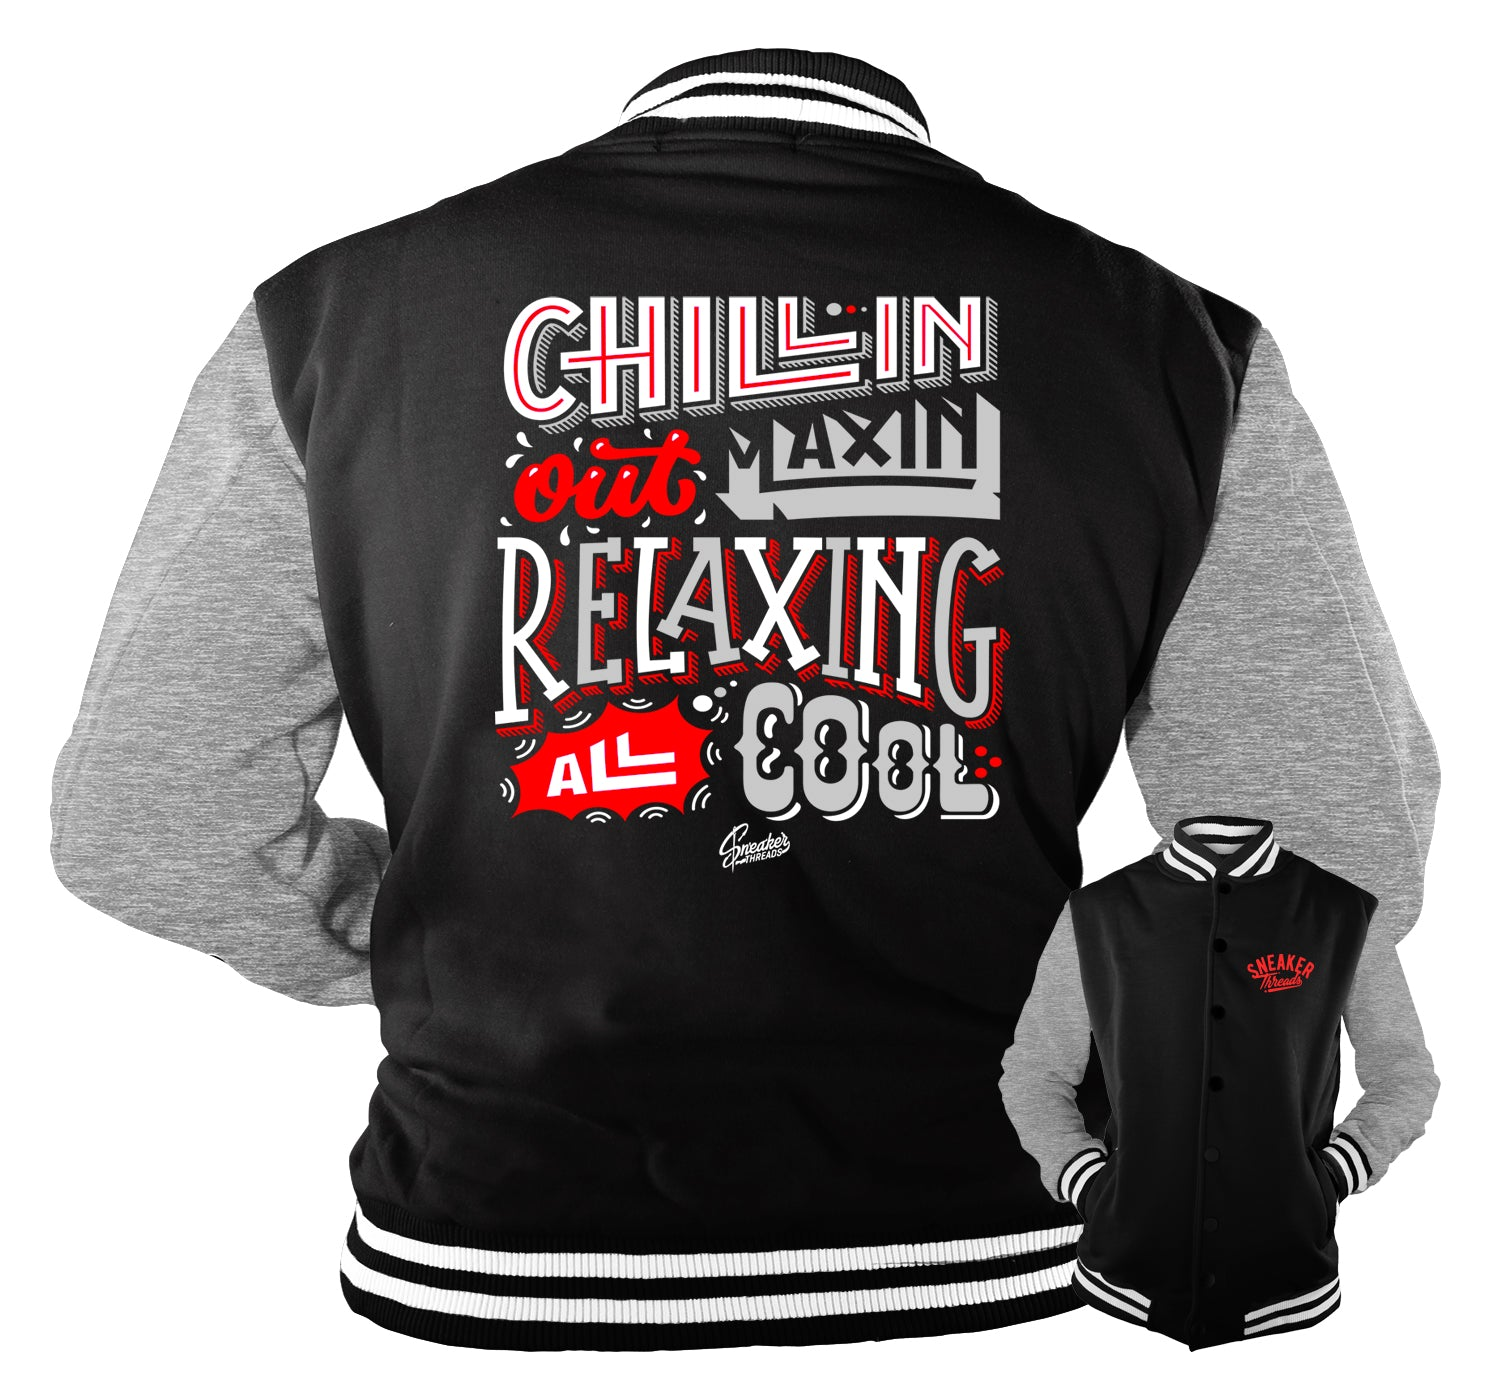 Jordan 13 Reverse Got Game Chillin Jacket